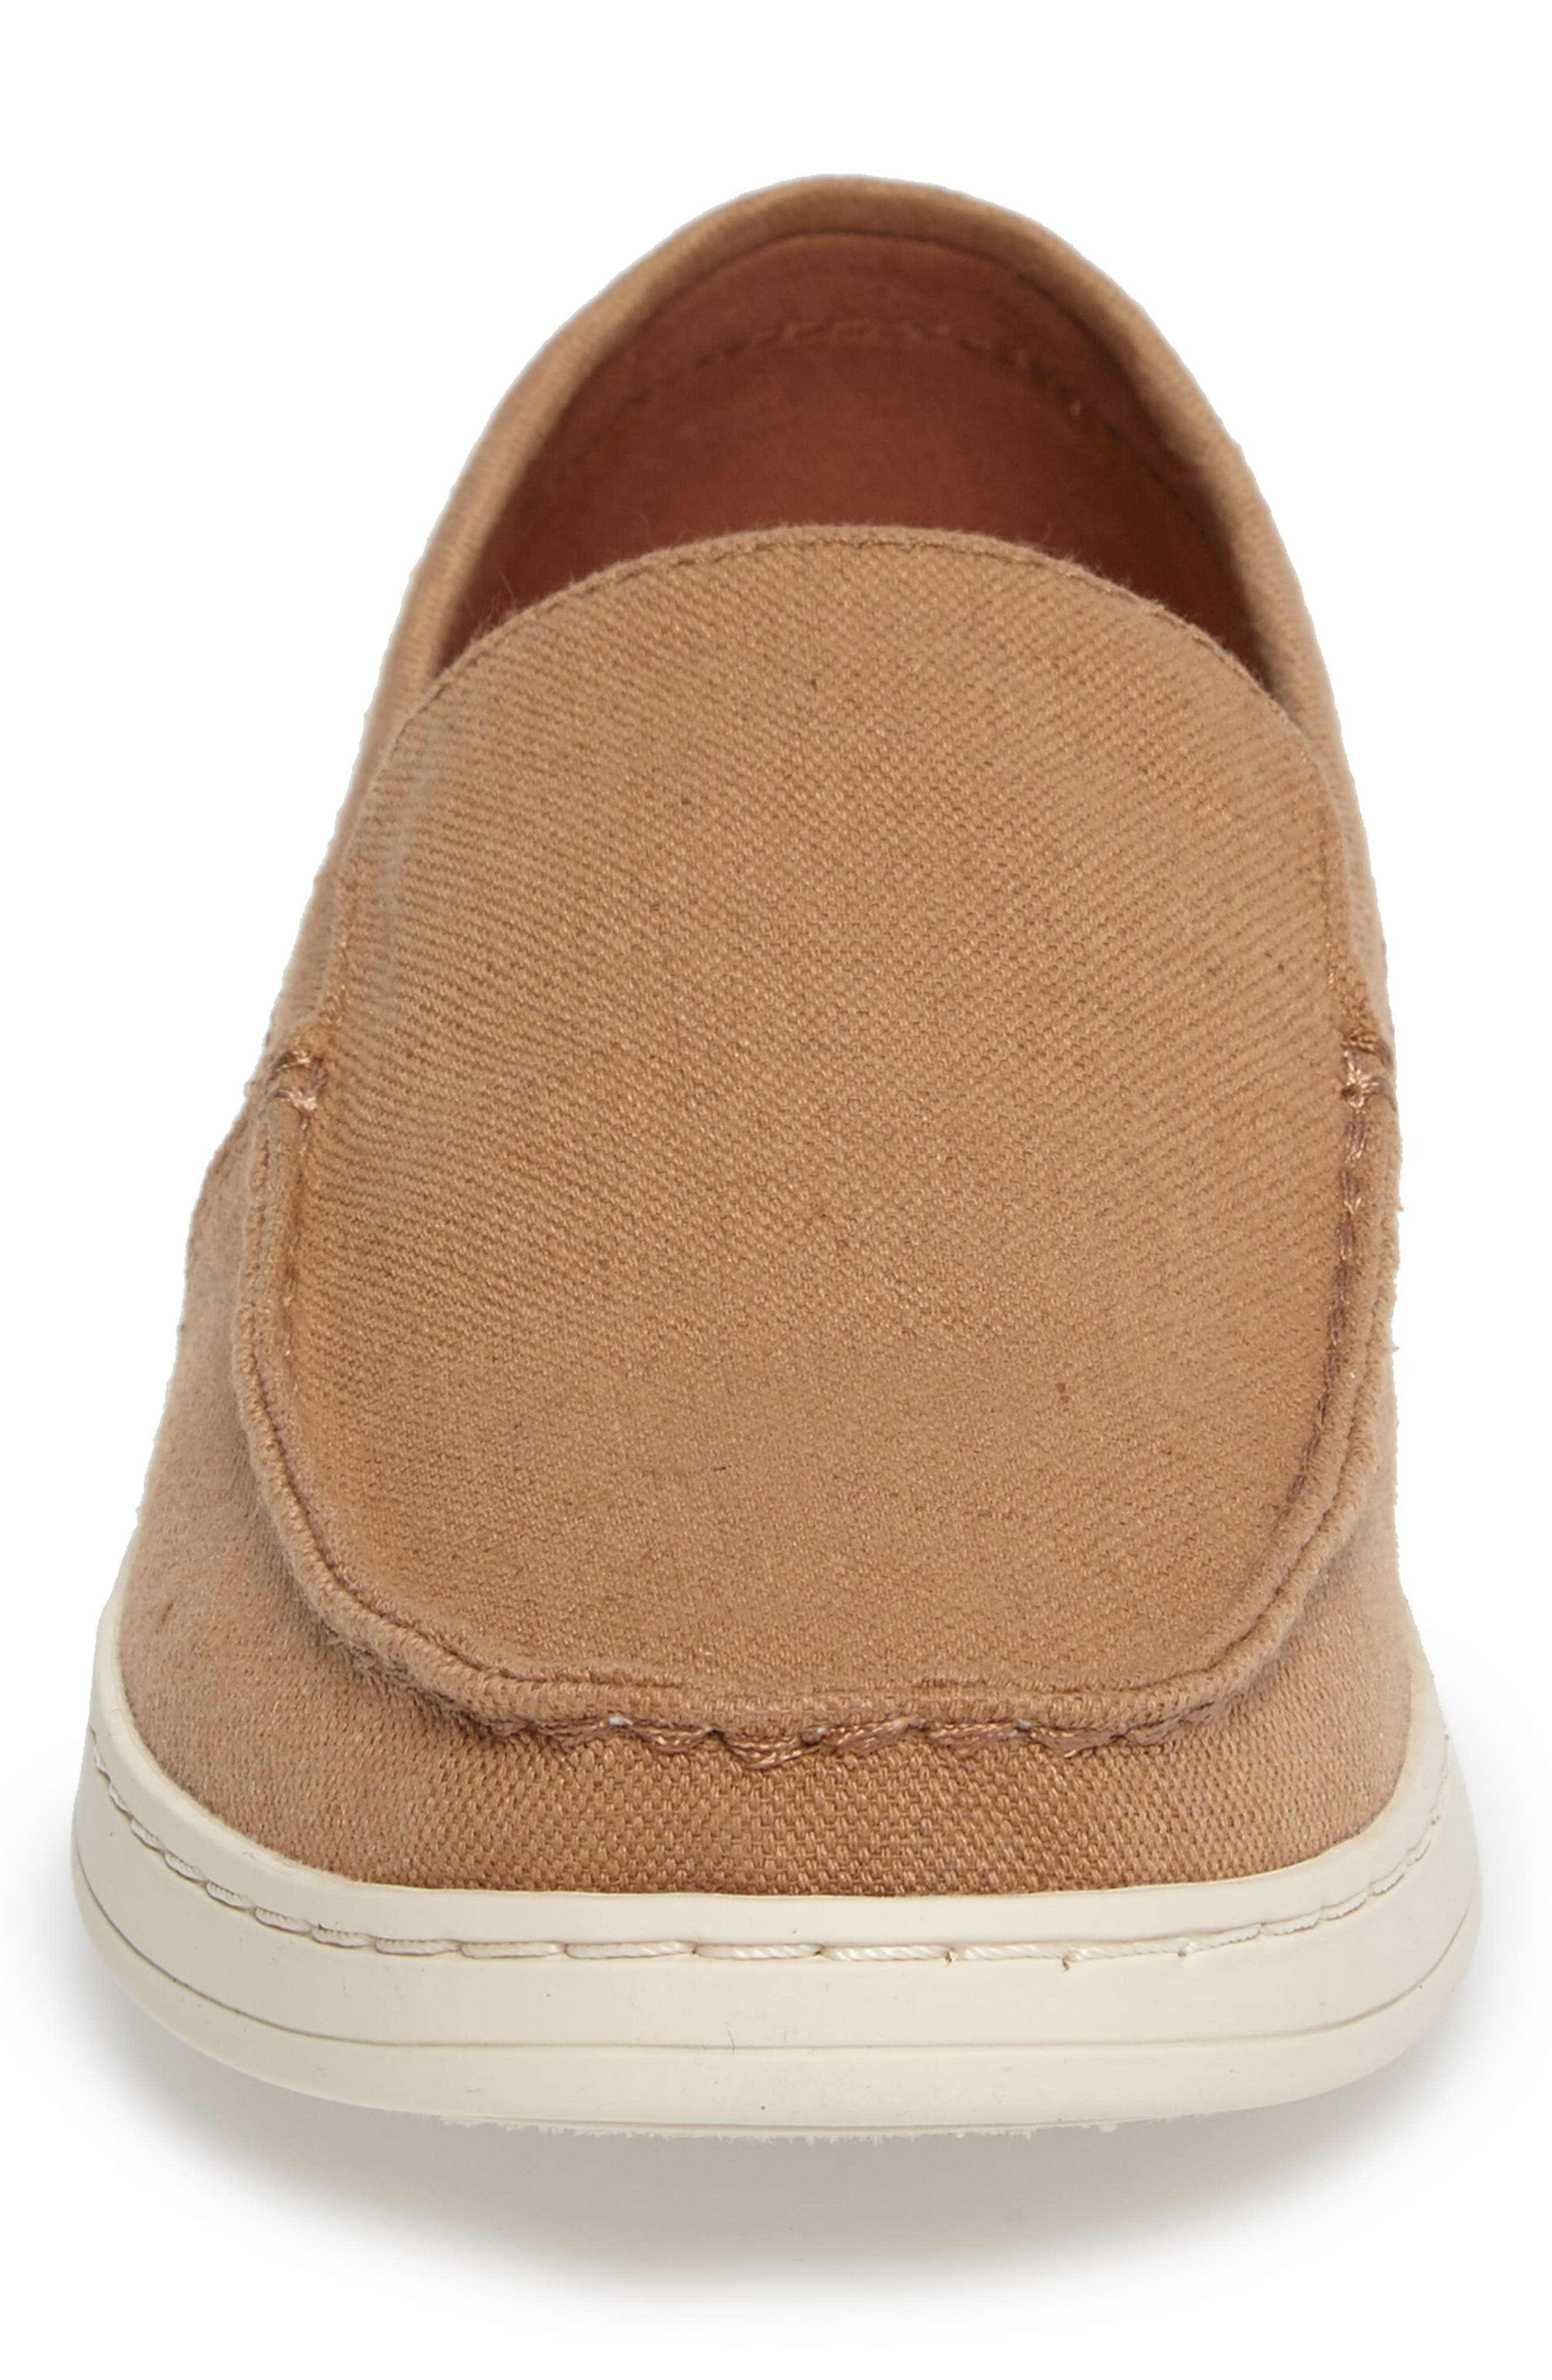 Aiden Slip-On Loafer,                             Alternate thumbnail 4, color,                             Toffee